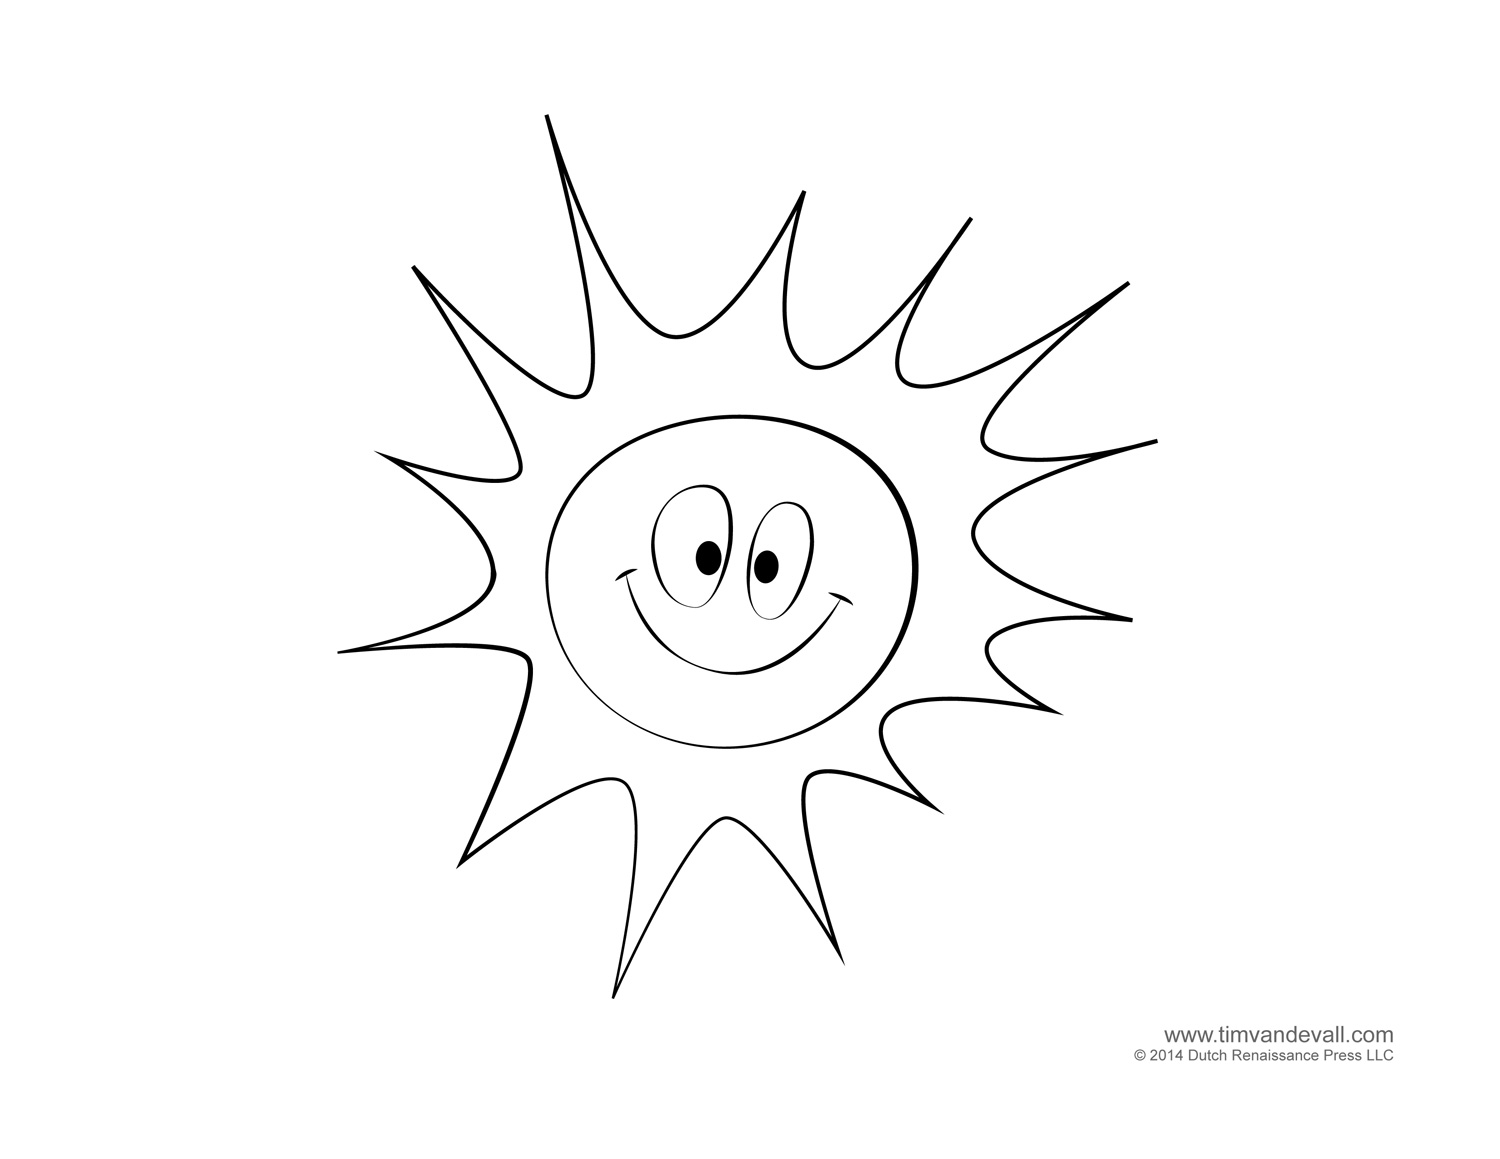 Sun And Clouds Drawing at GetDrawings.com | Free for personal use ...